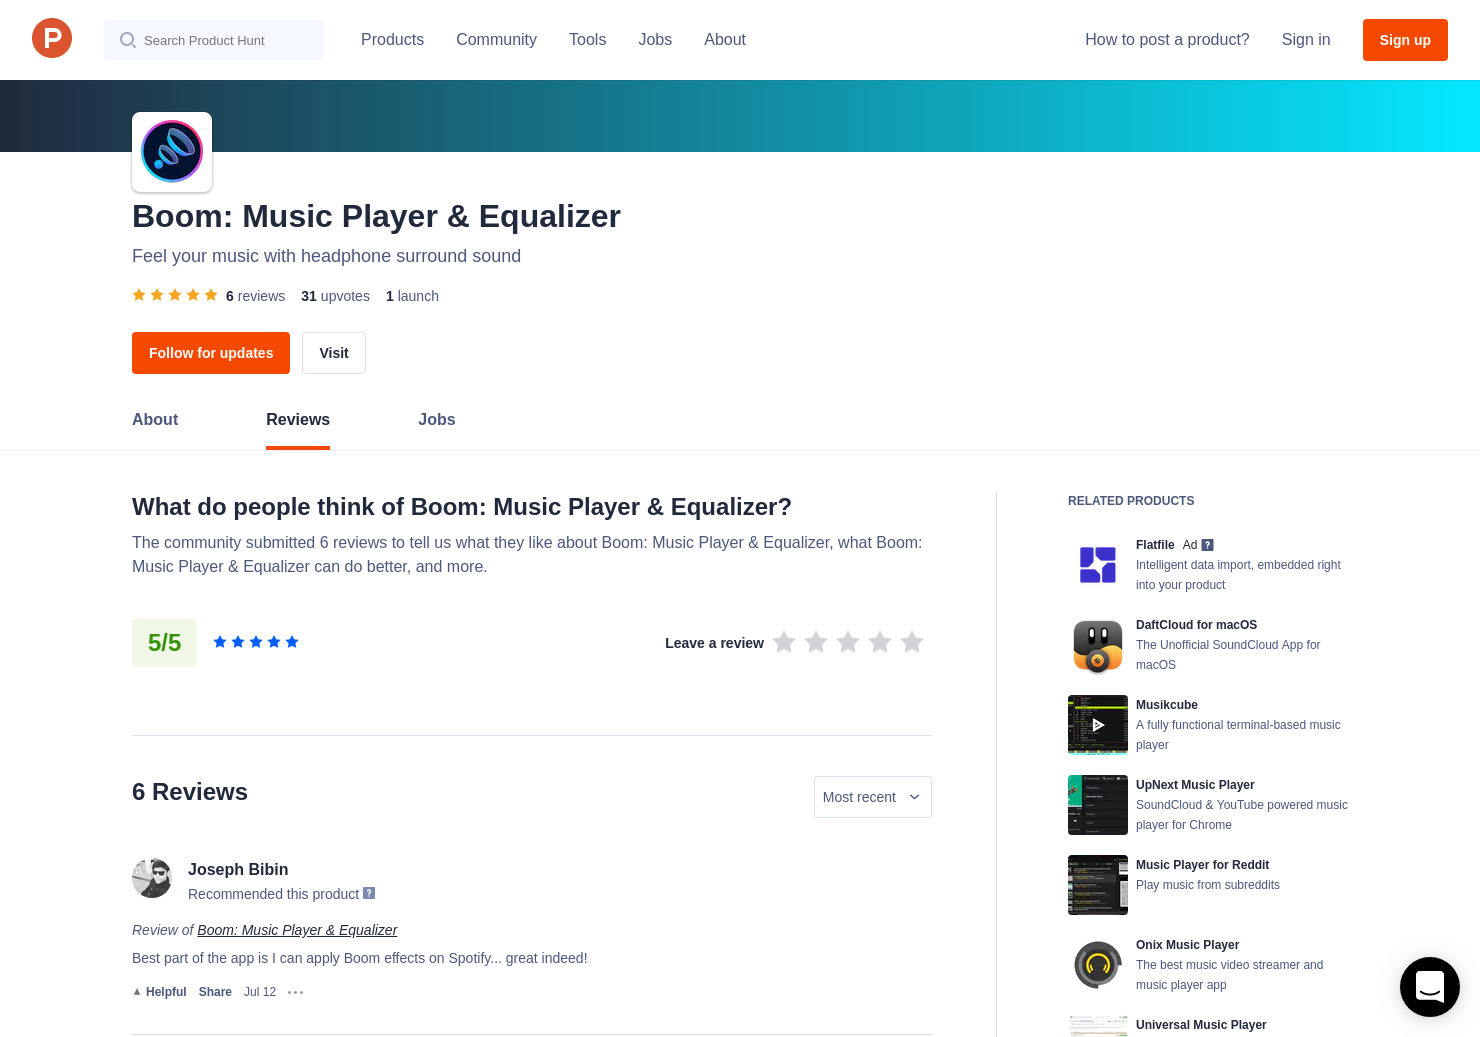 6 Boom: Music Player & Equalizer Reviews - Pros, Cons and